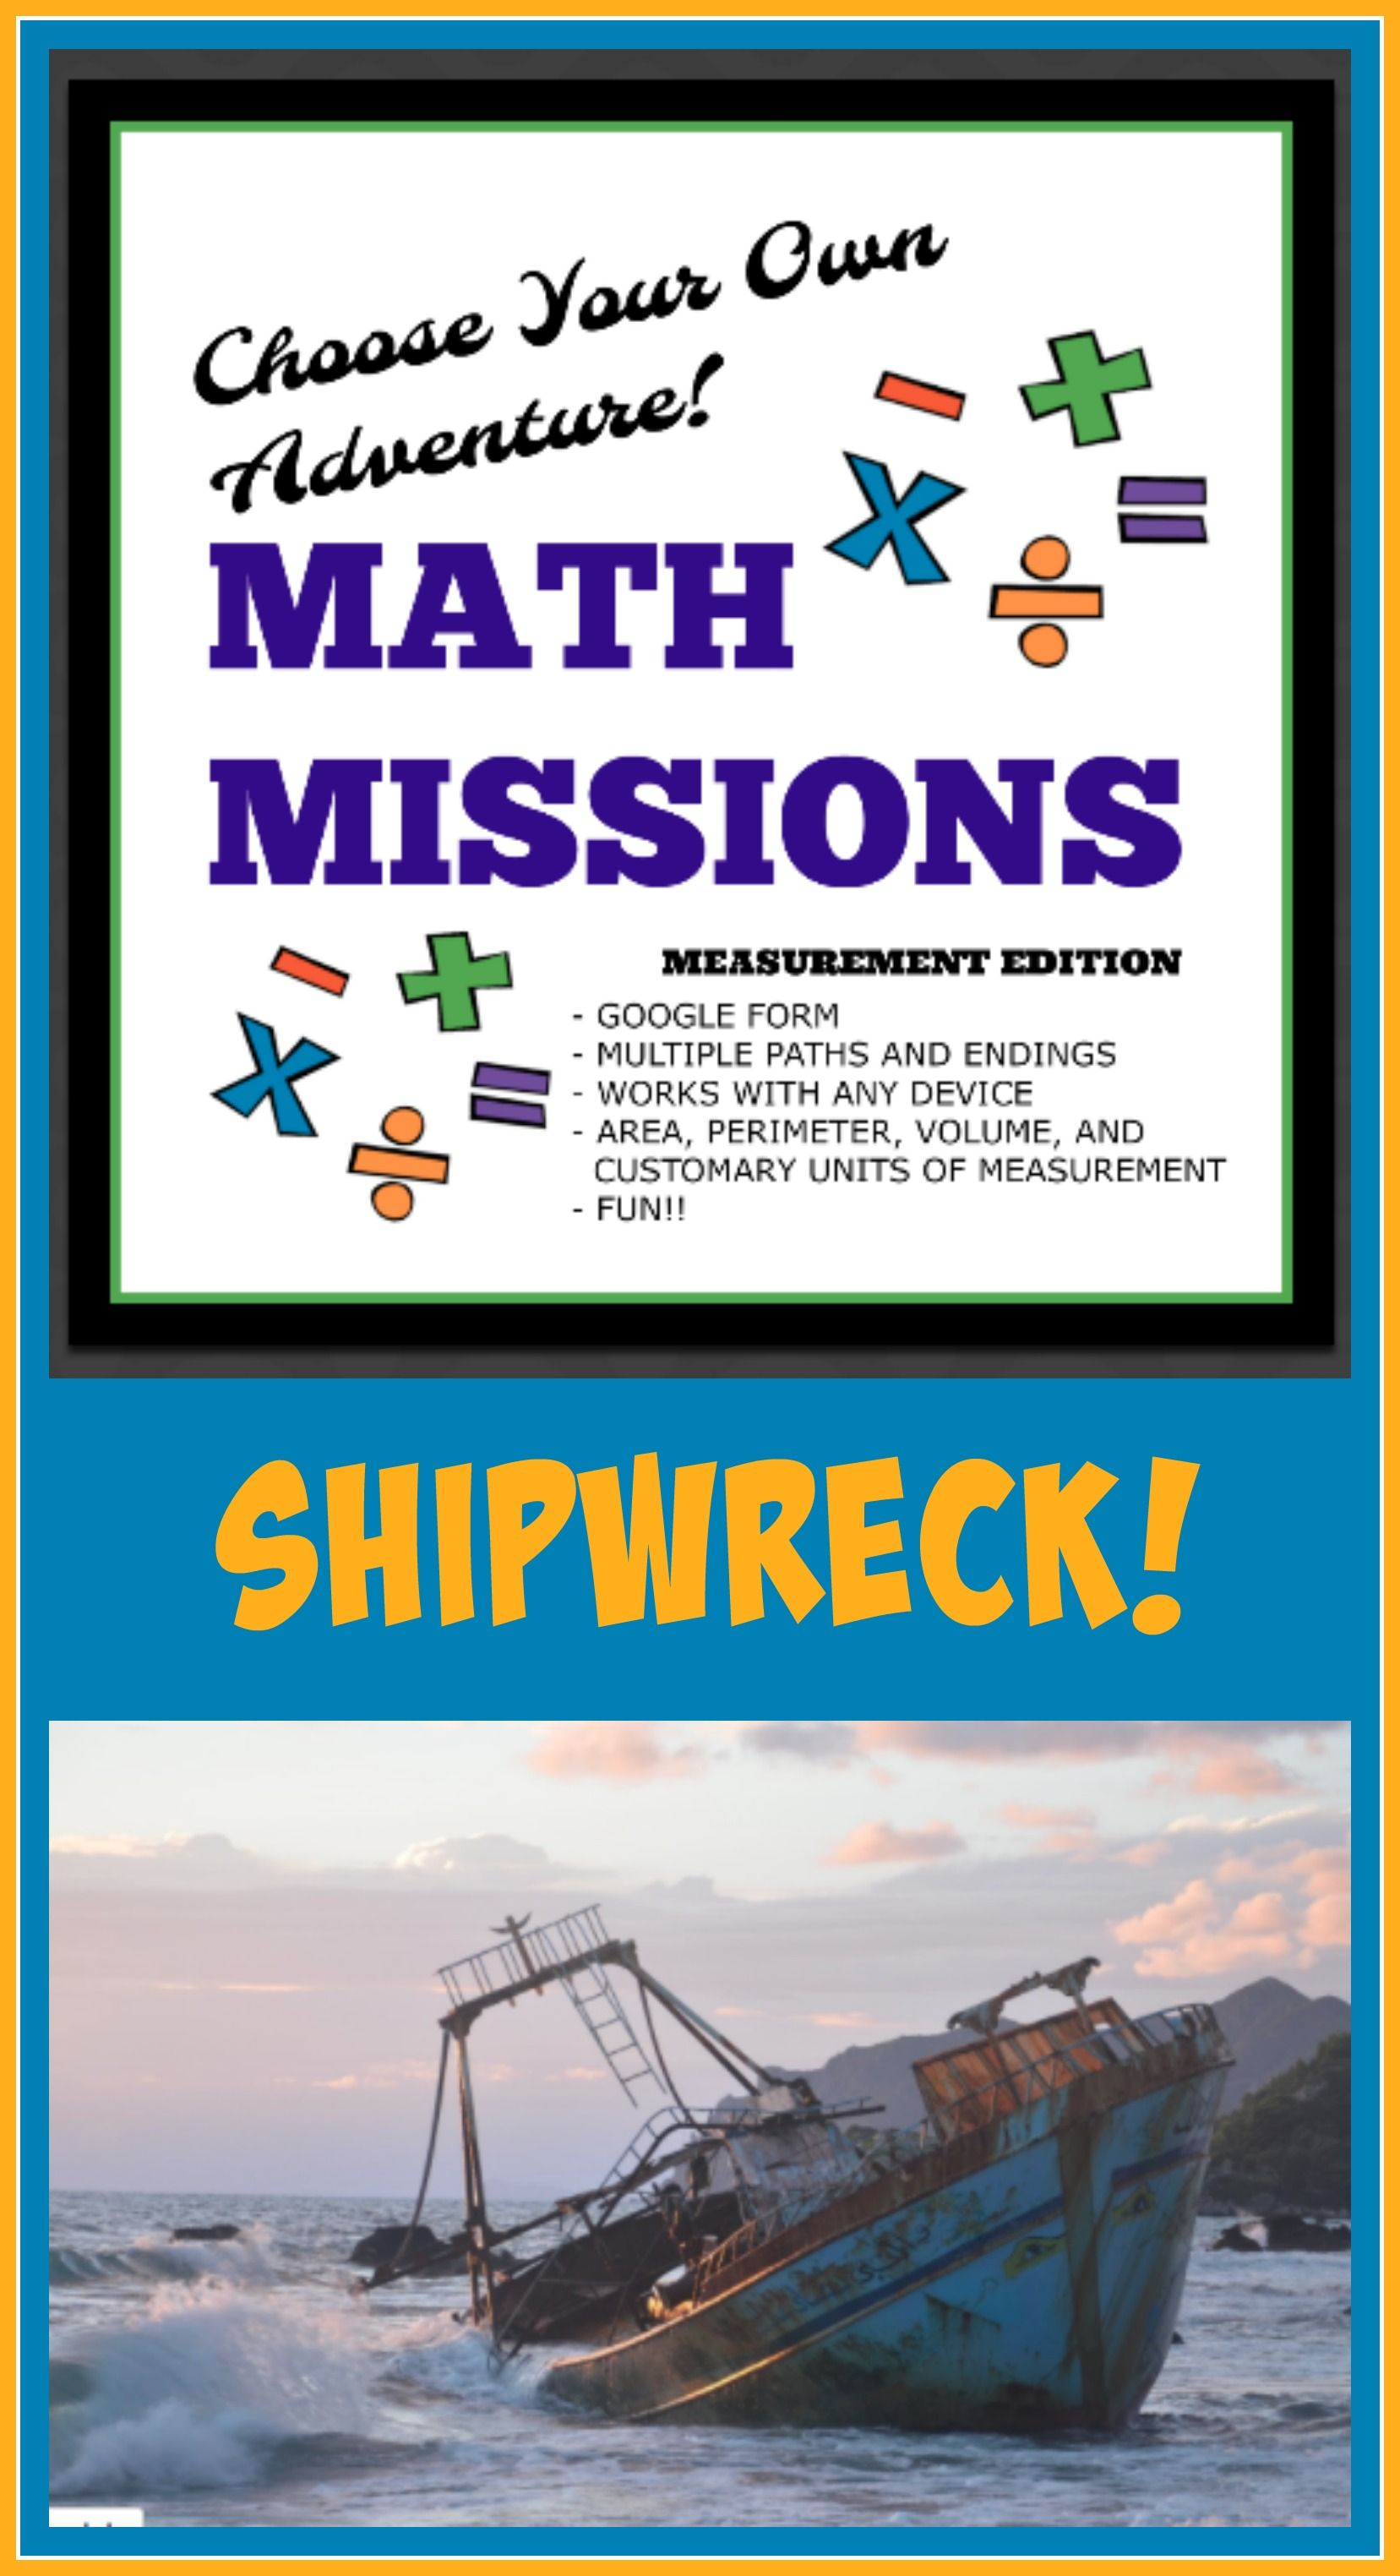 Math missions measurement edition move forward math and students choose your own adventure math this is a google form adventure for the concept of fandeluxe Images